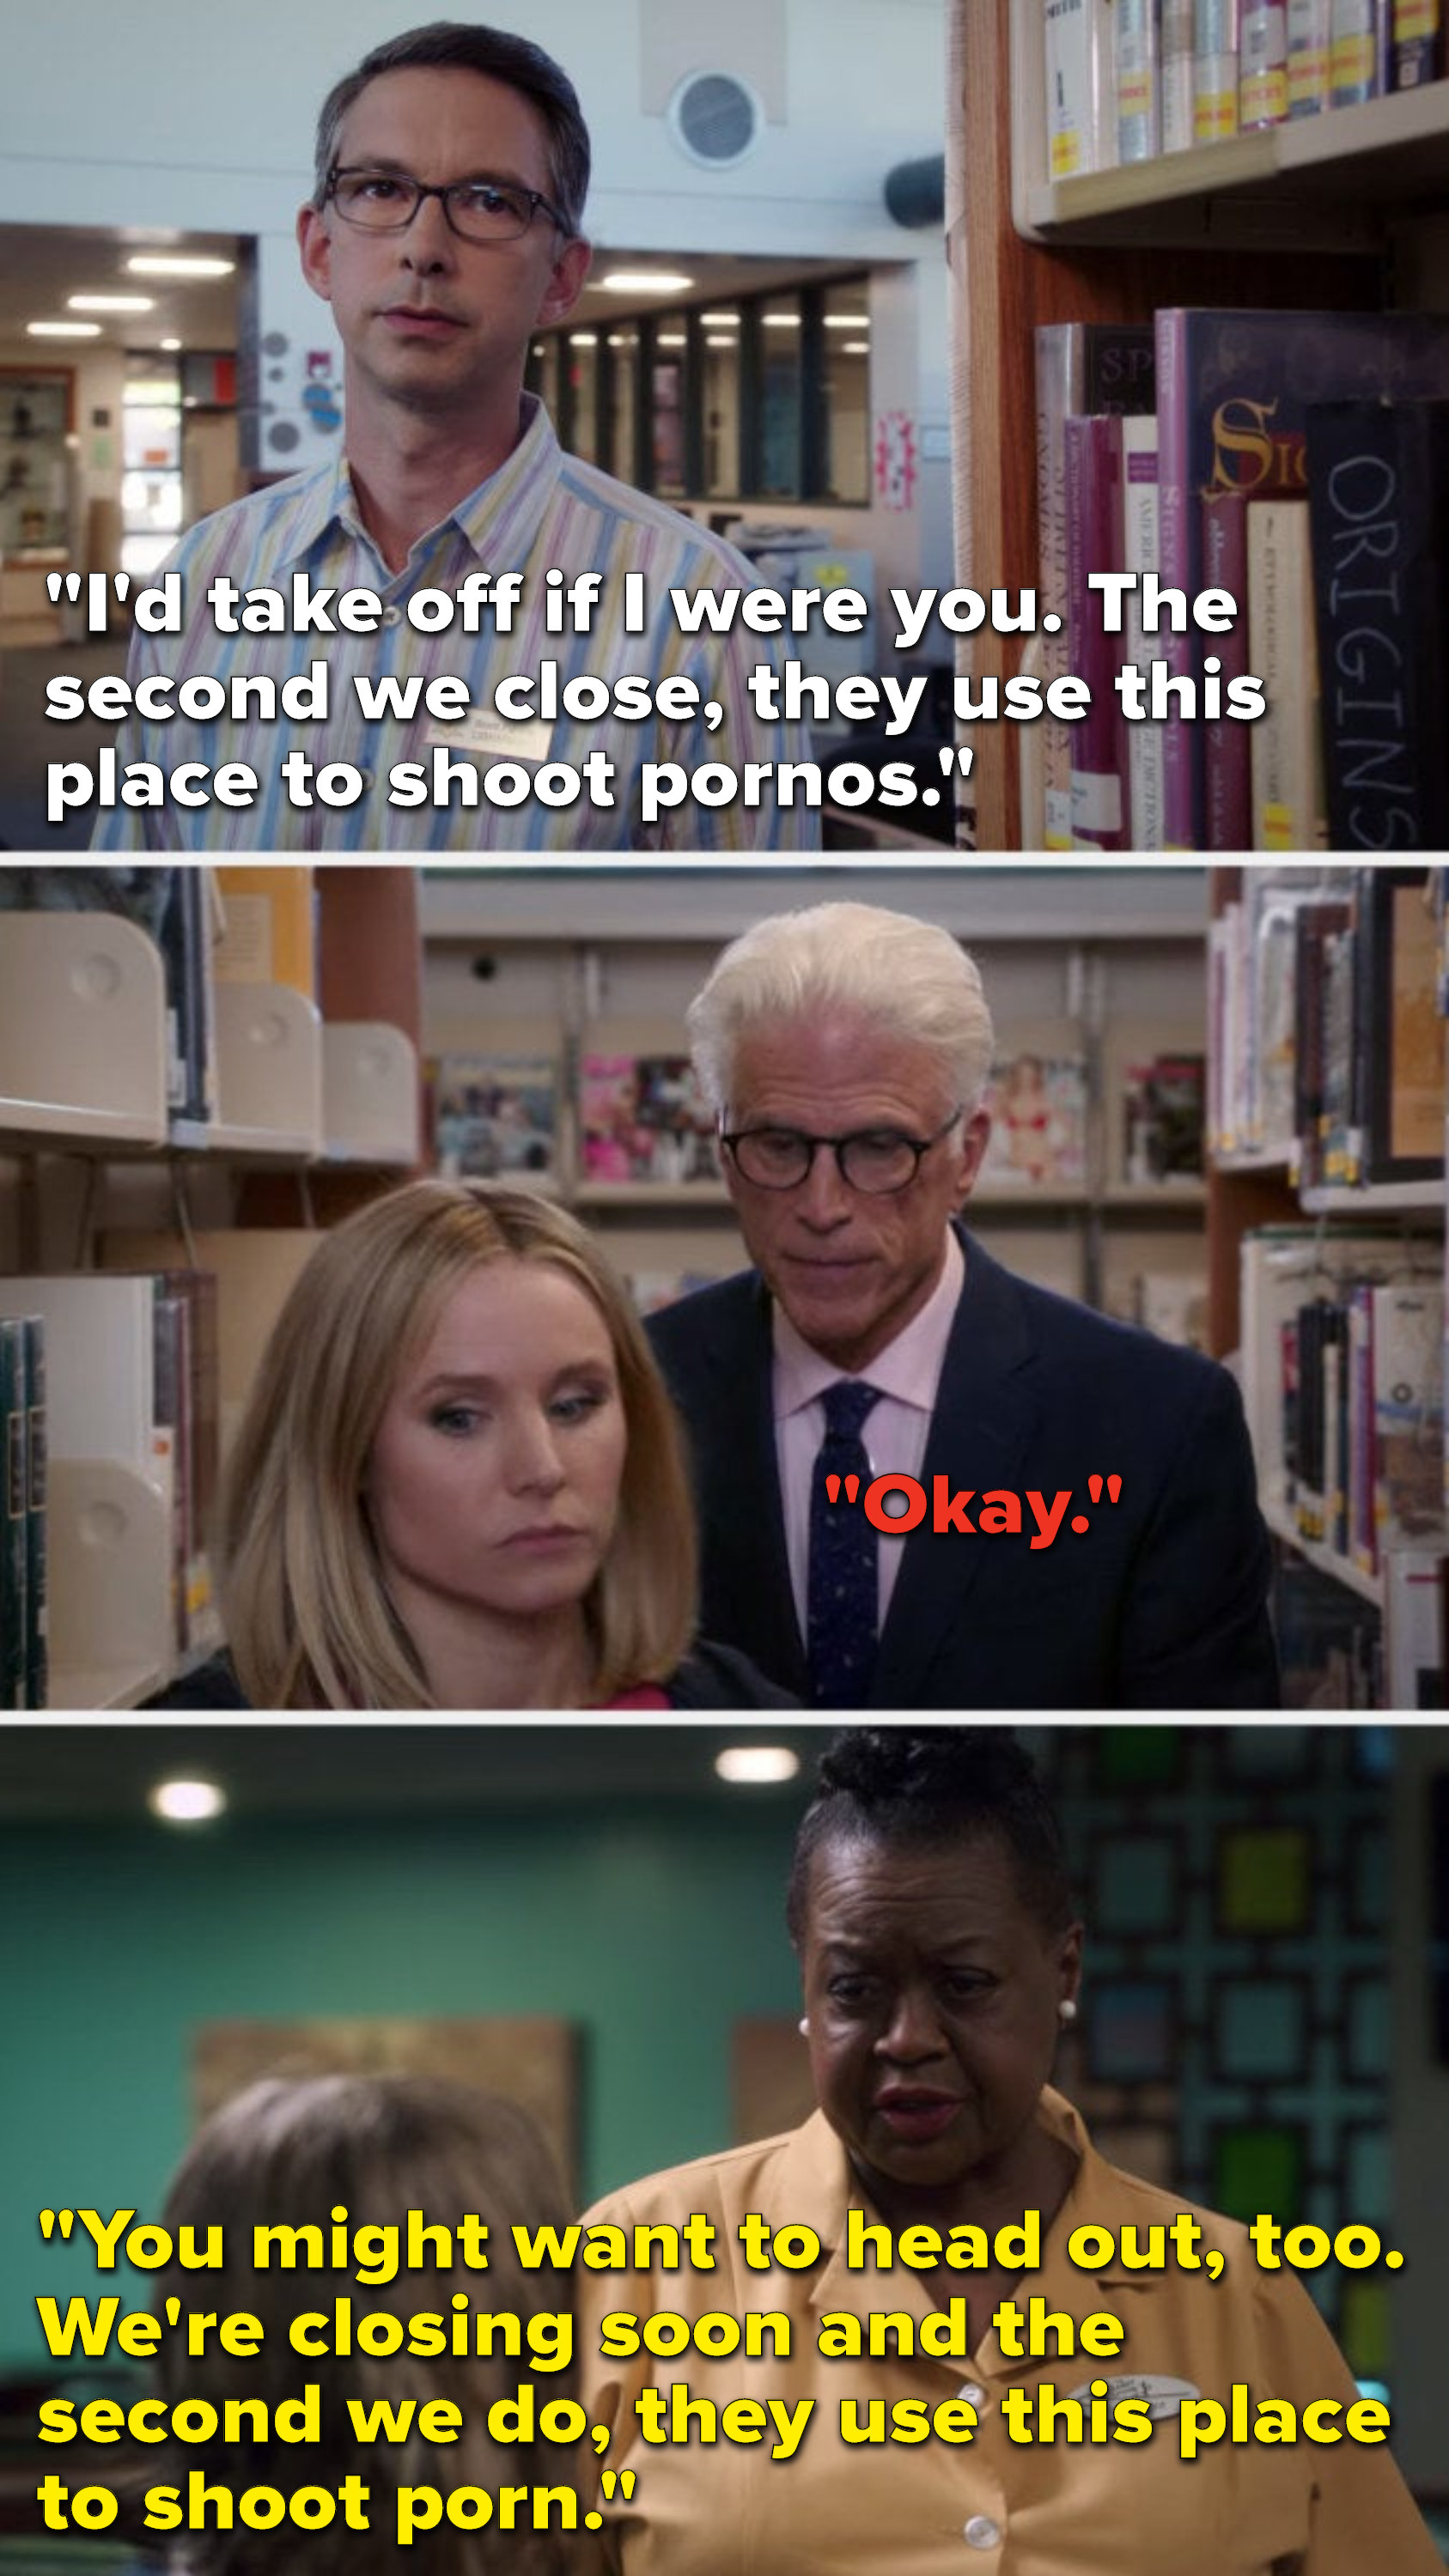 """A librarian says, """"The second we close, they use this place to shoot pornos,"""" Michael says """"Okay"""" and he and Eleanor leave, then at a diner a server says, """"We're closing soon and the second we do, they use this place to shoot porn"""""""